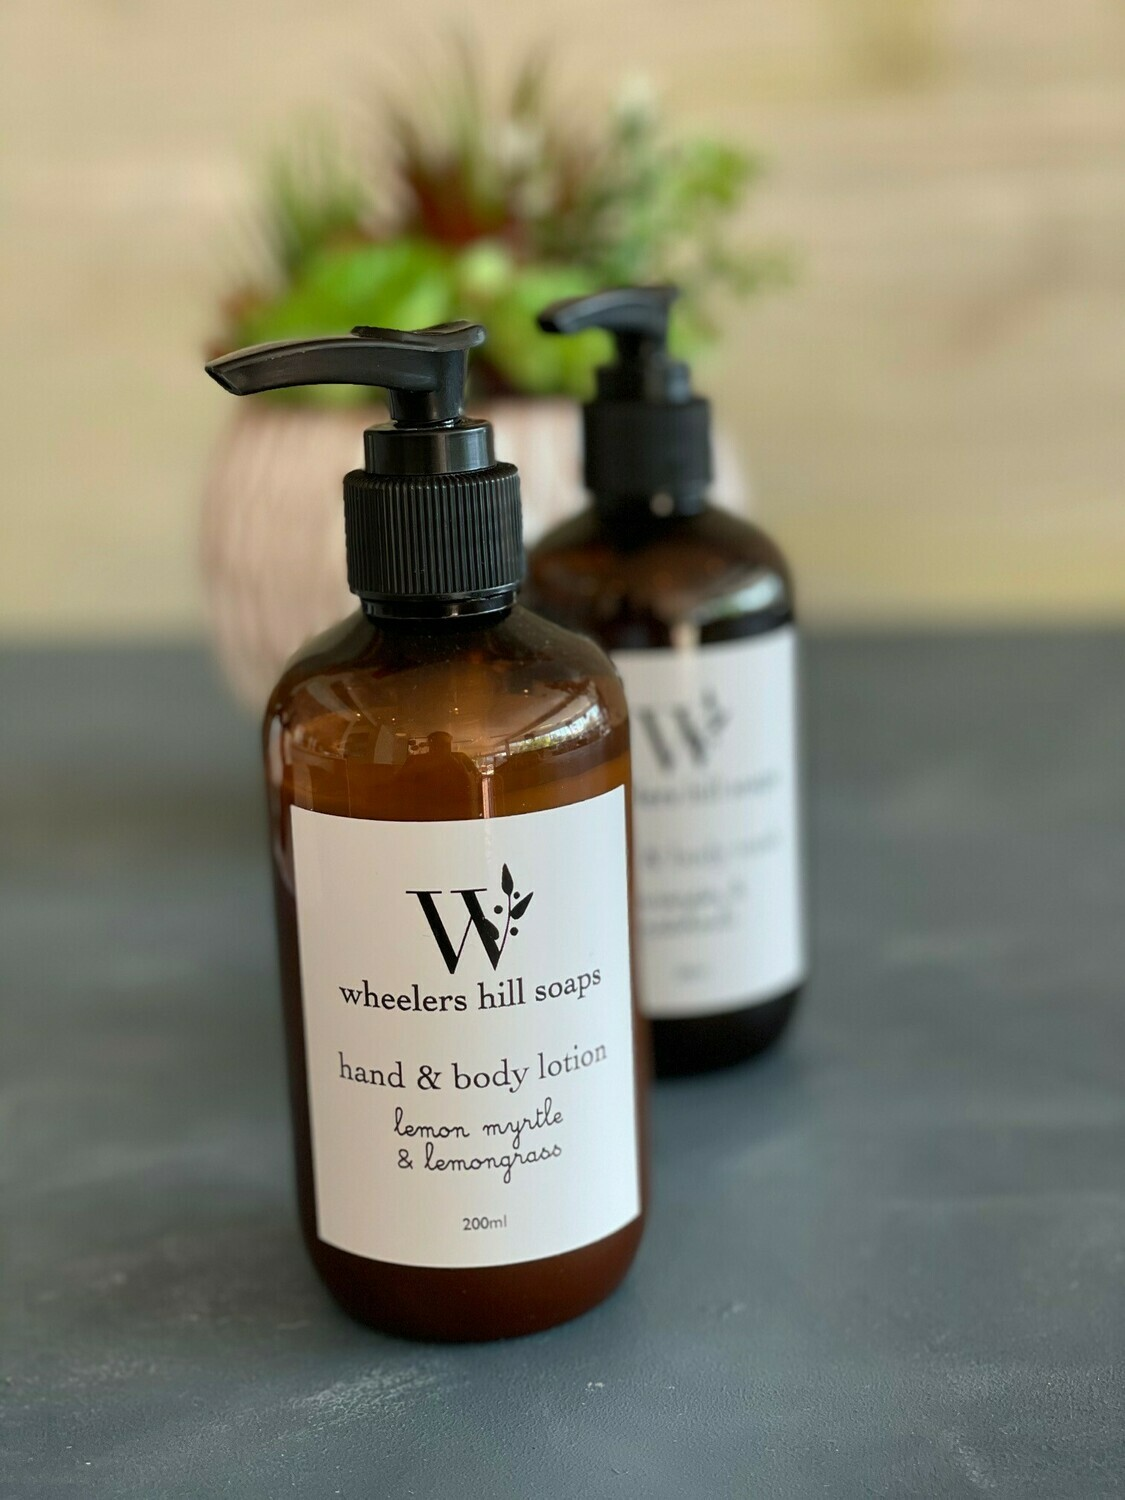 Hand & Body Lotion - Wheelers Hill (200ml)